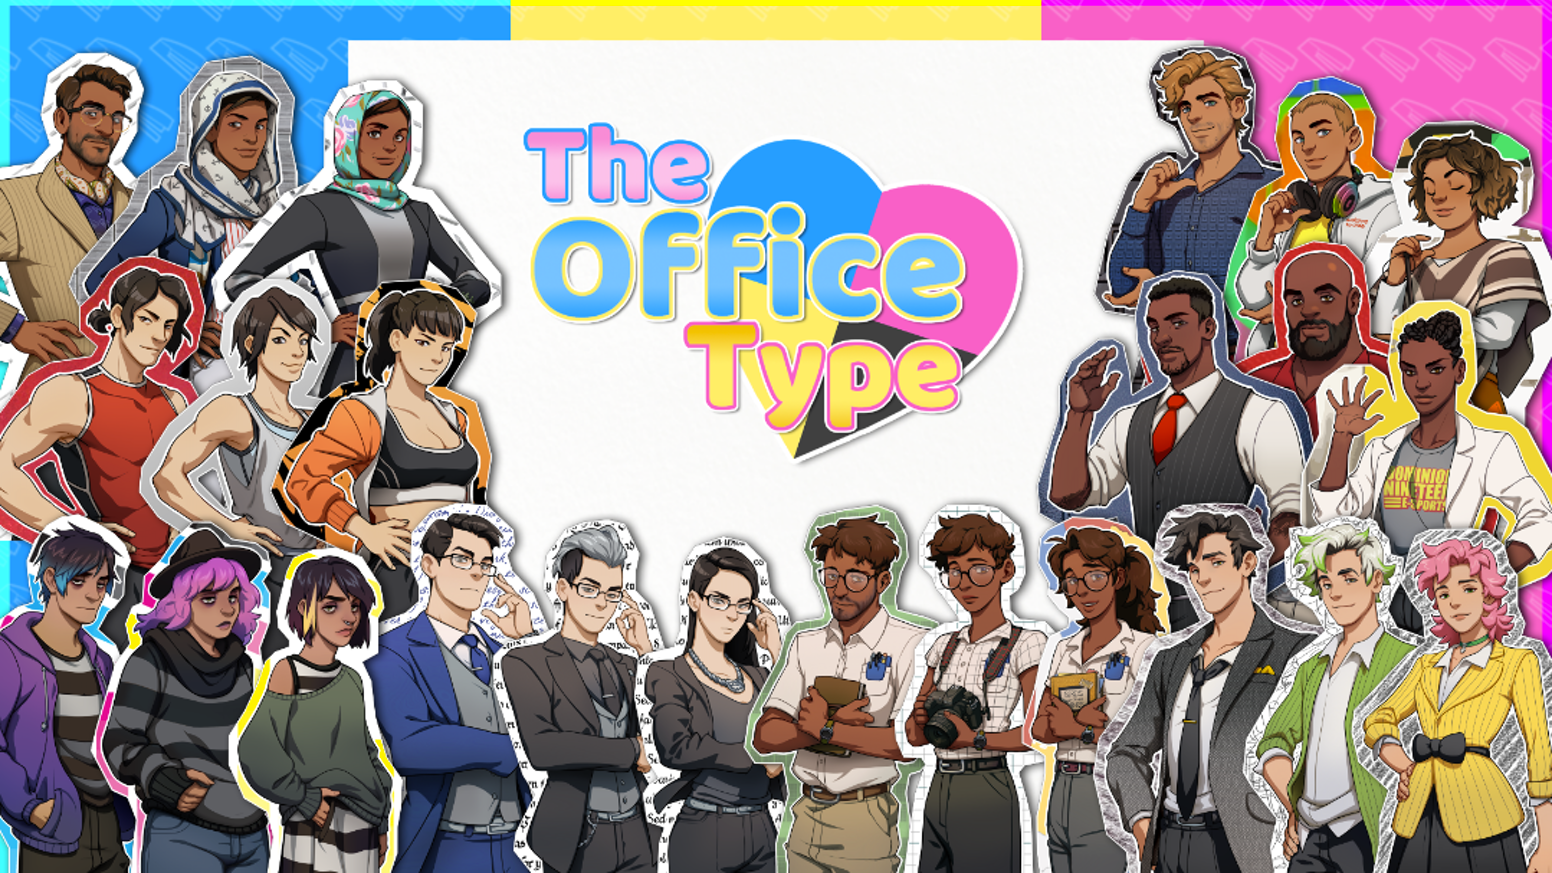 Pick your character roster (m, f, nb) and date your office supplies in this group-centric comedy dating sim game.